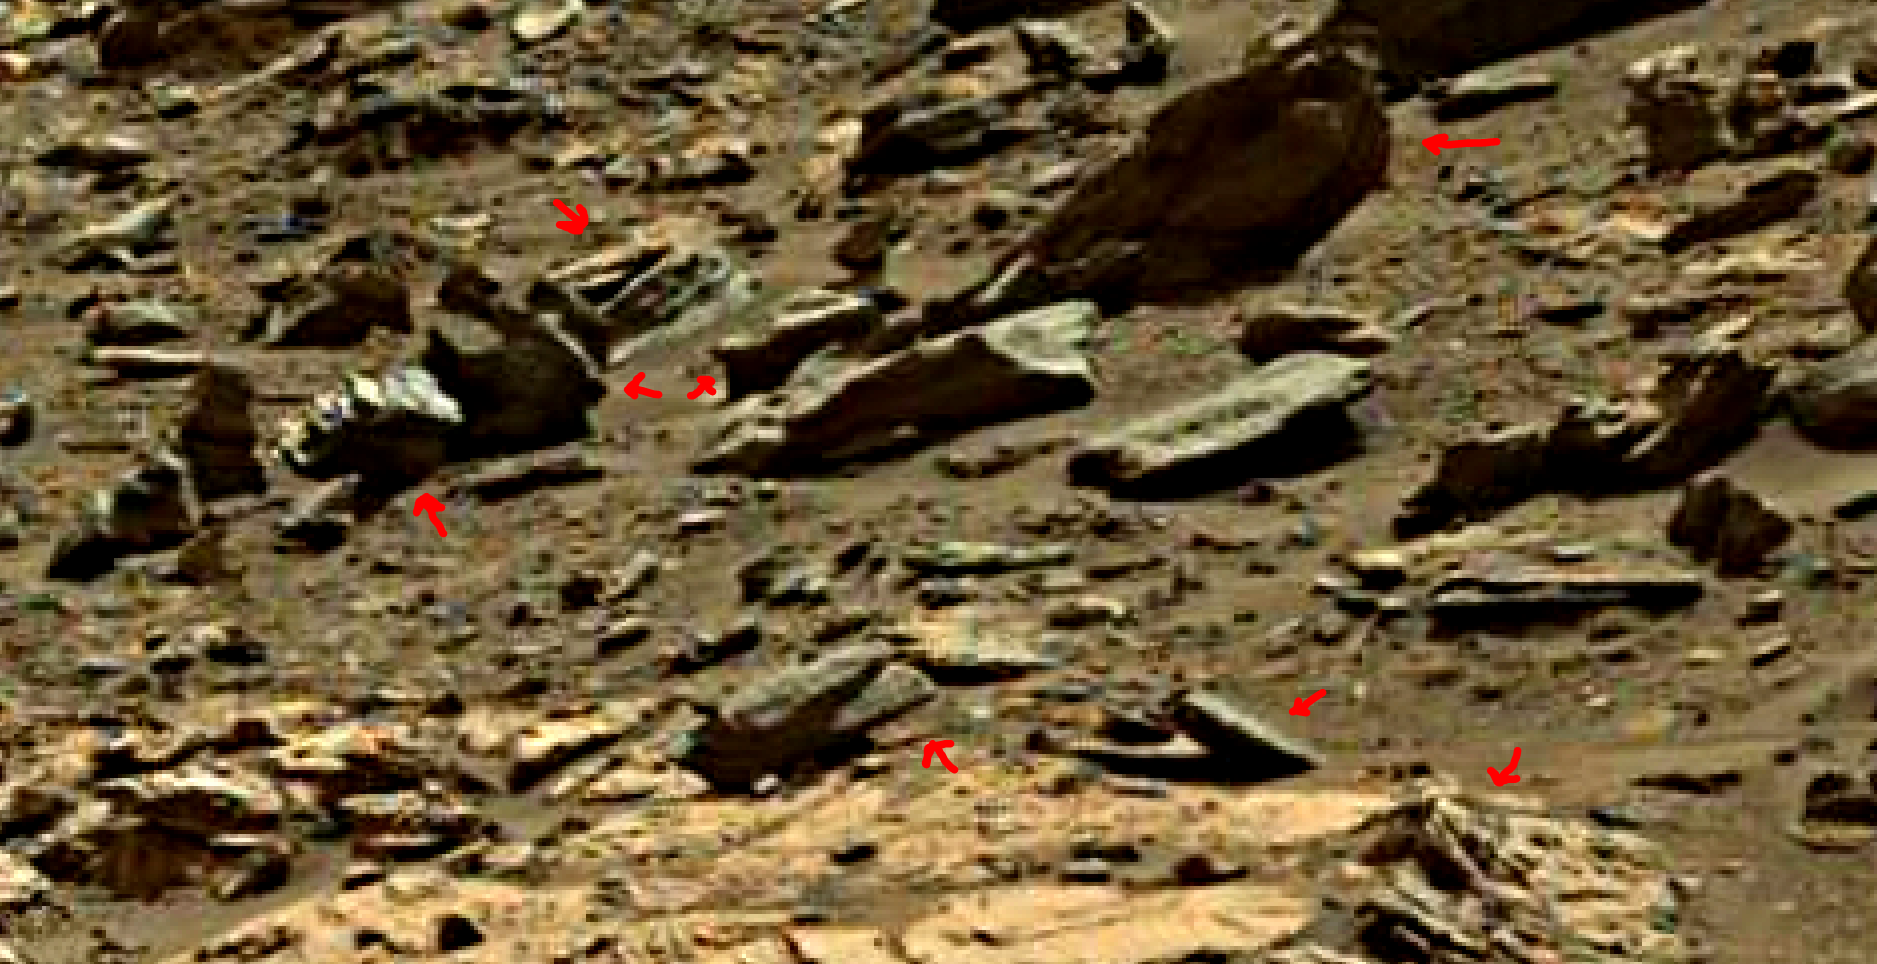 mars-sol-1452-anomaly-artifacts-3a-was-life-on-mars